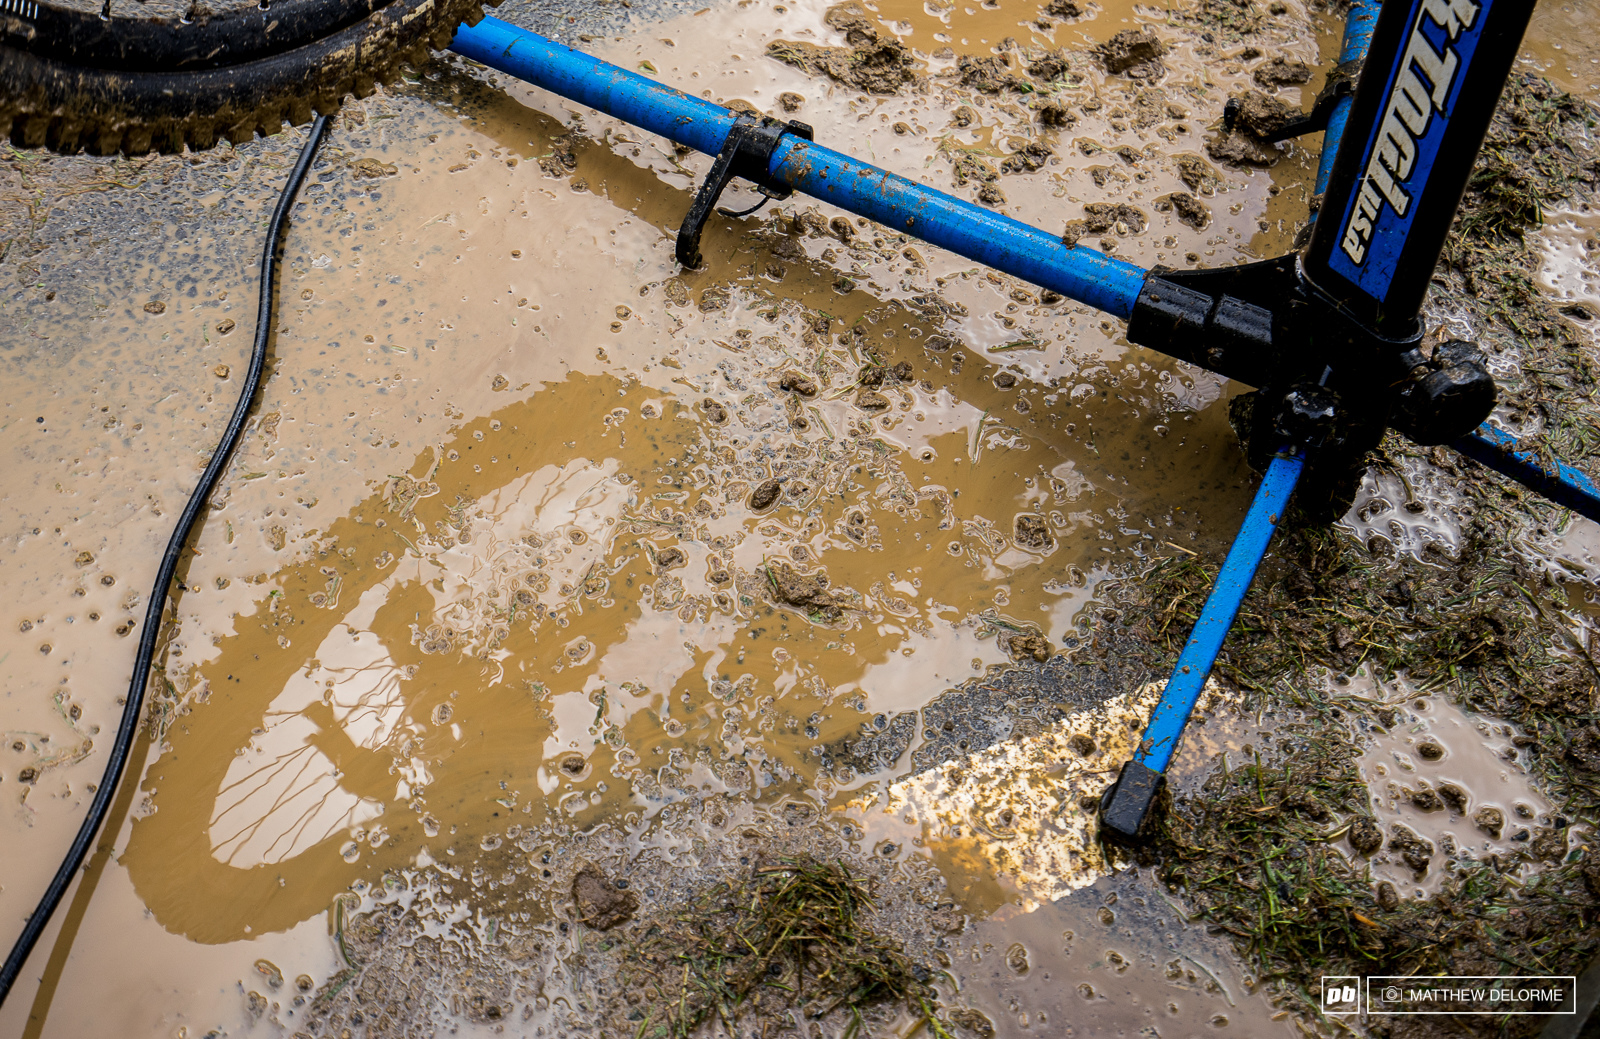 Pretty sure the holy water is going to get funky if these bikes keep collecting so much mud.